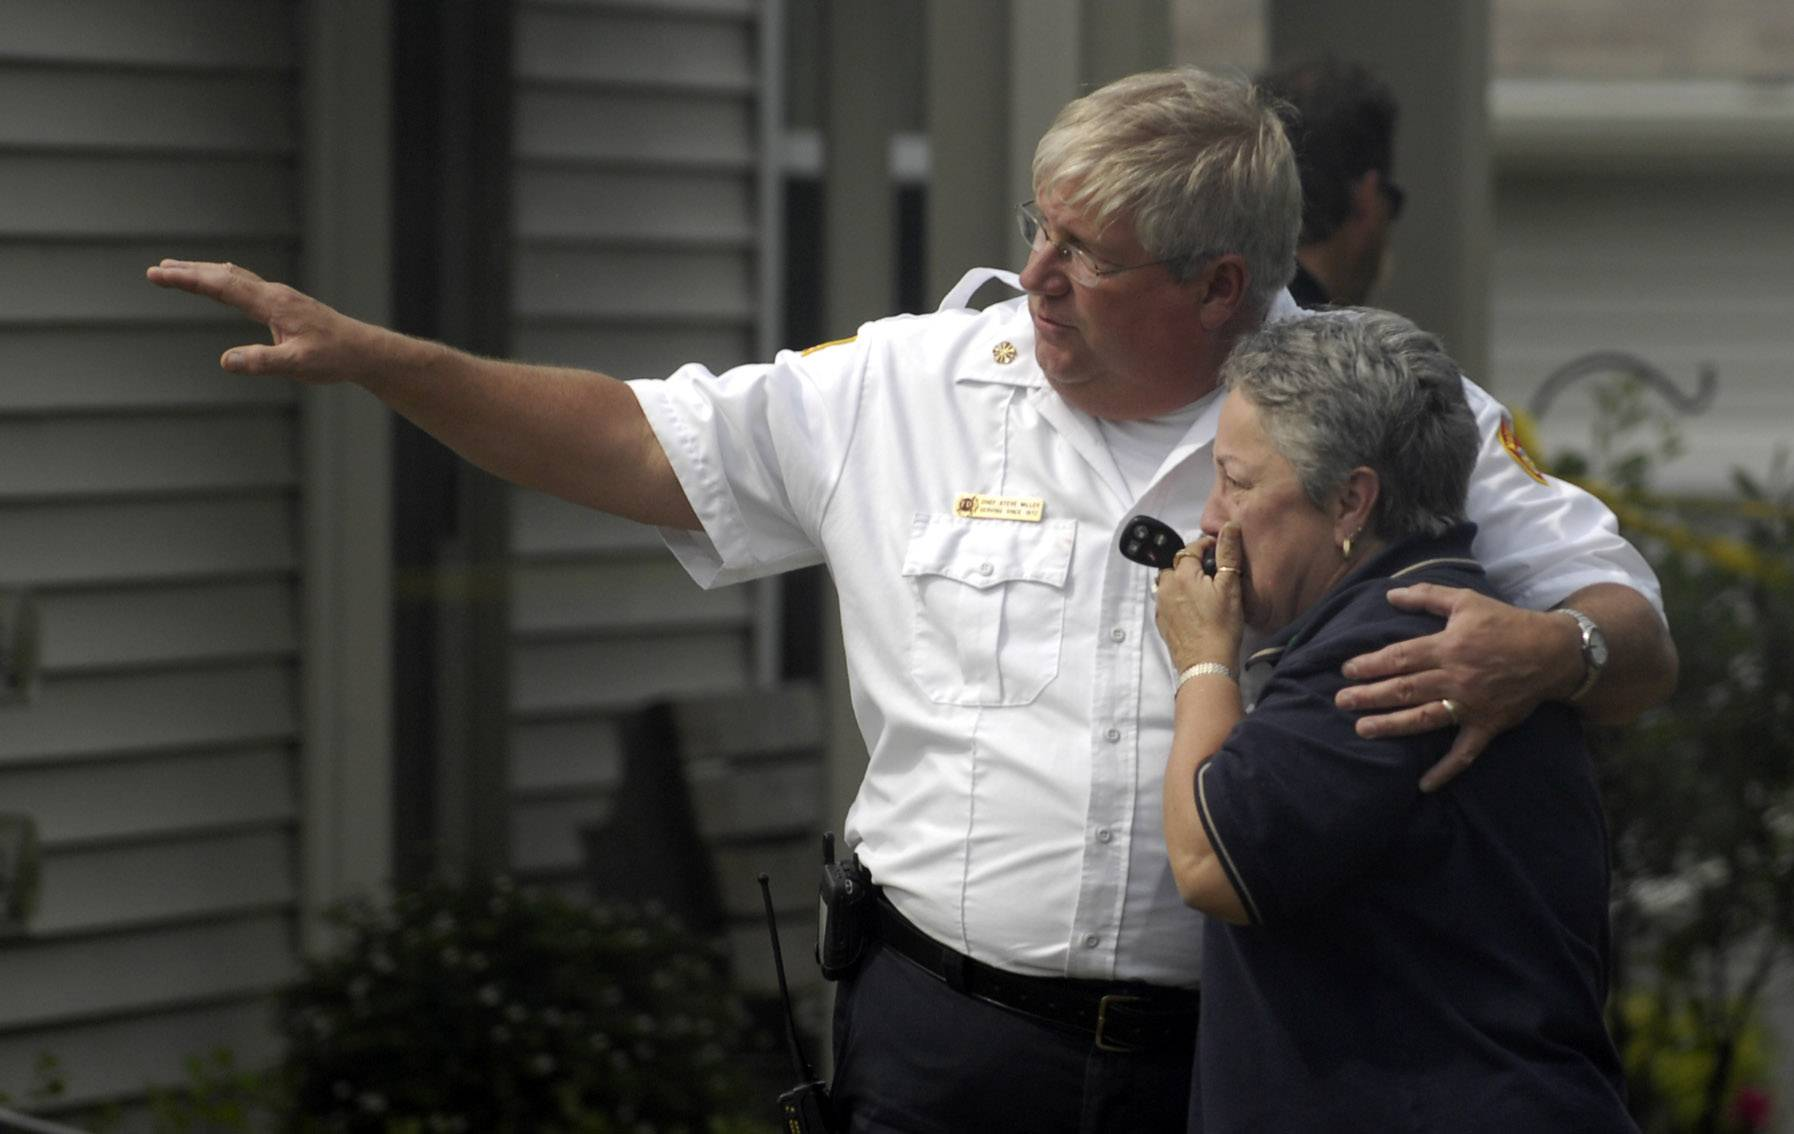 North Aurora Fire Protection District Chief Steve Miller consoles a resident after her Sugar Grove home burned in a 2009 fire. Miller retired April 30 after 42 years with the district.